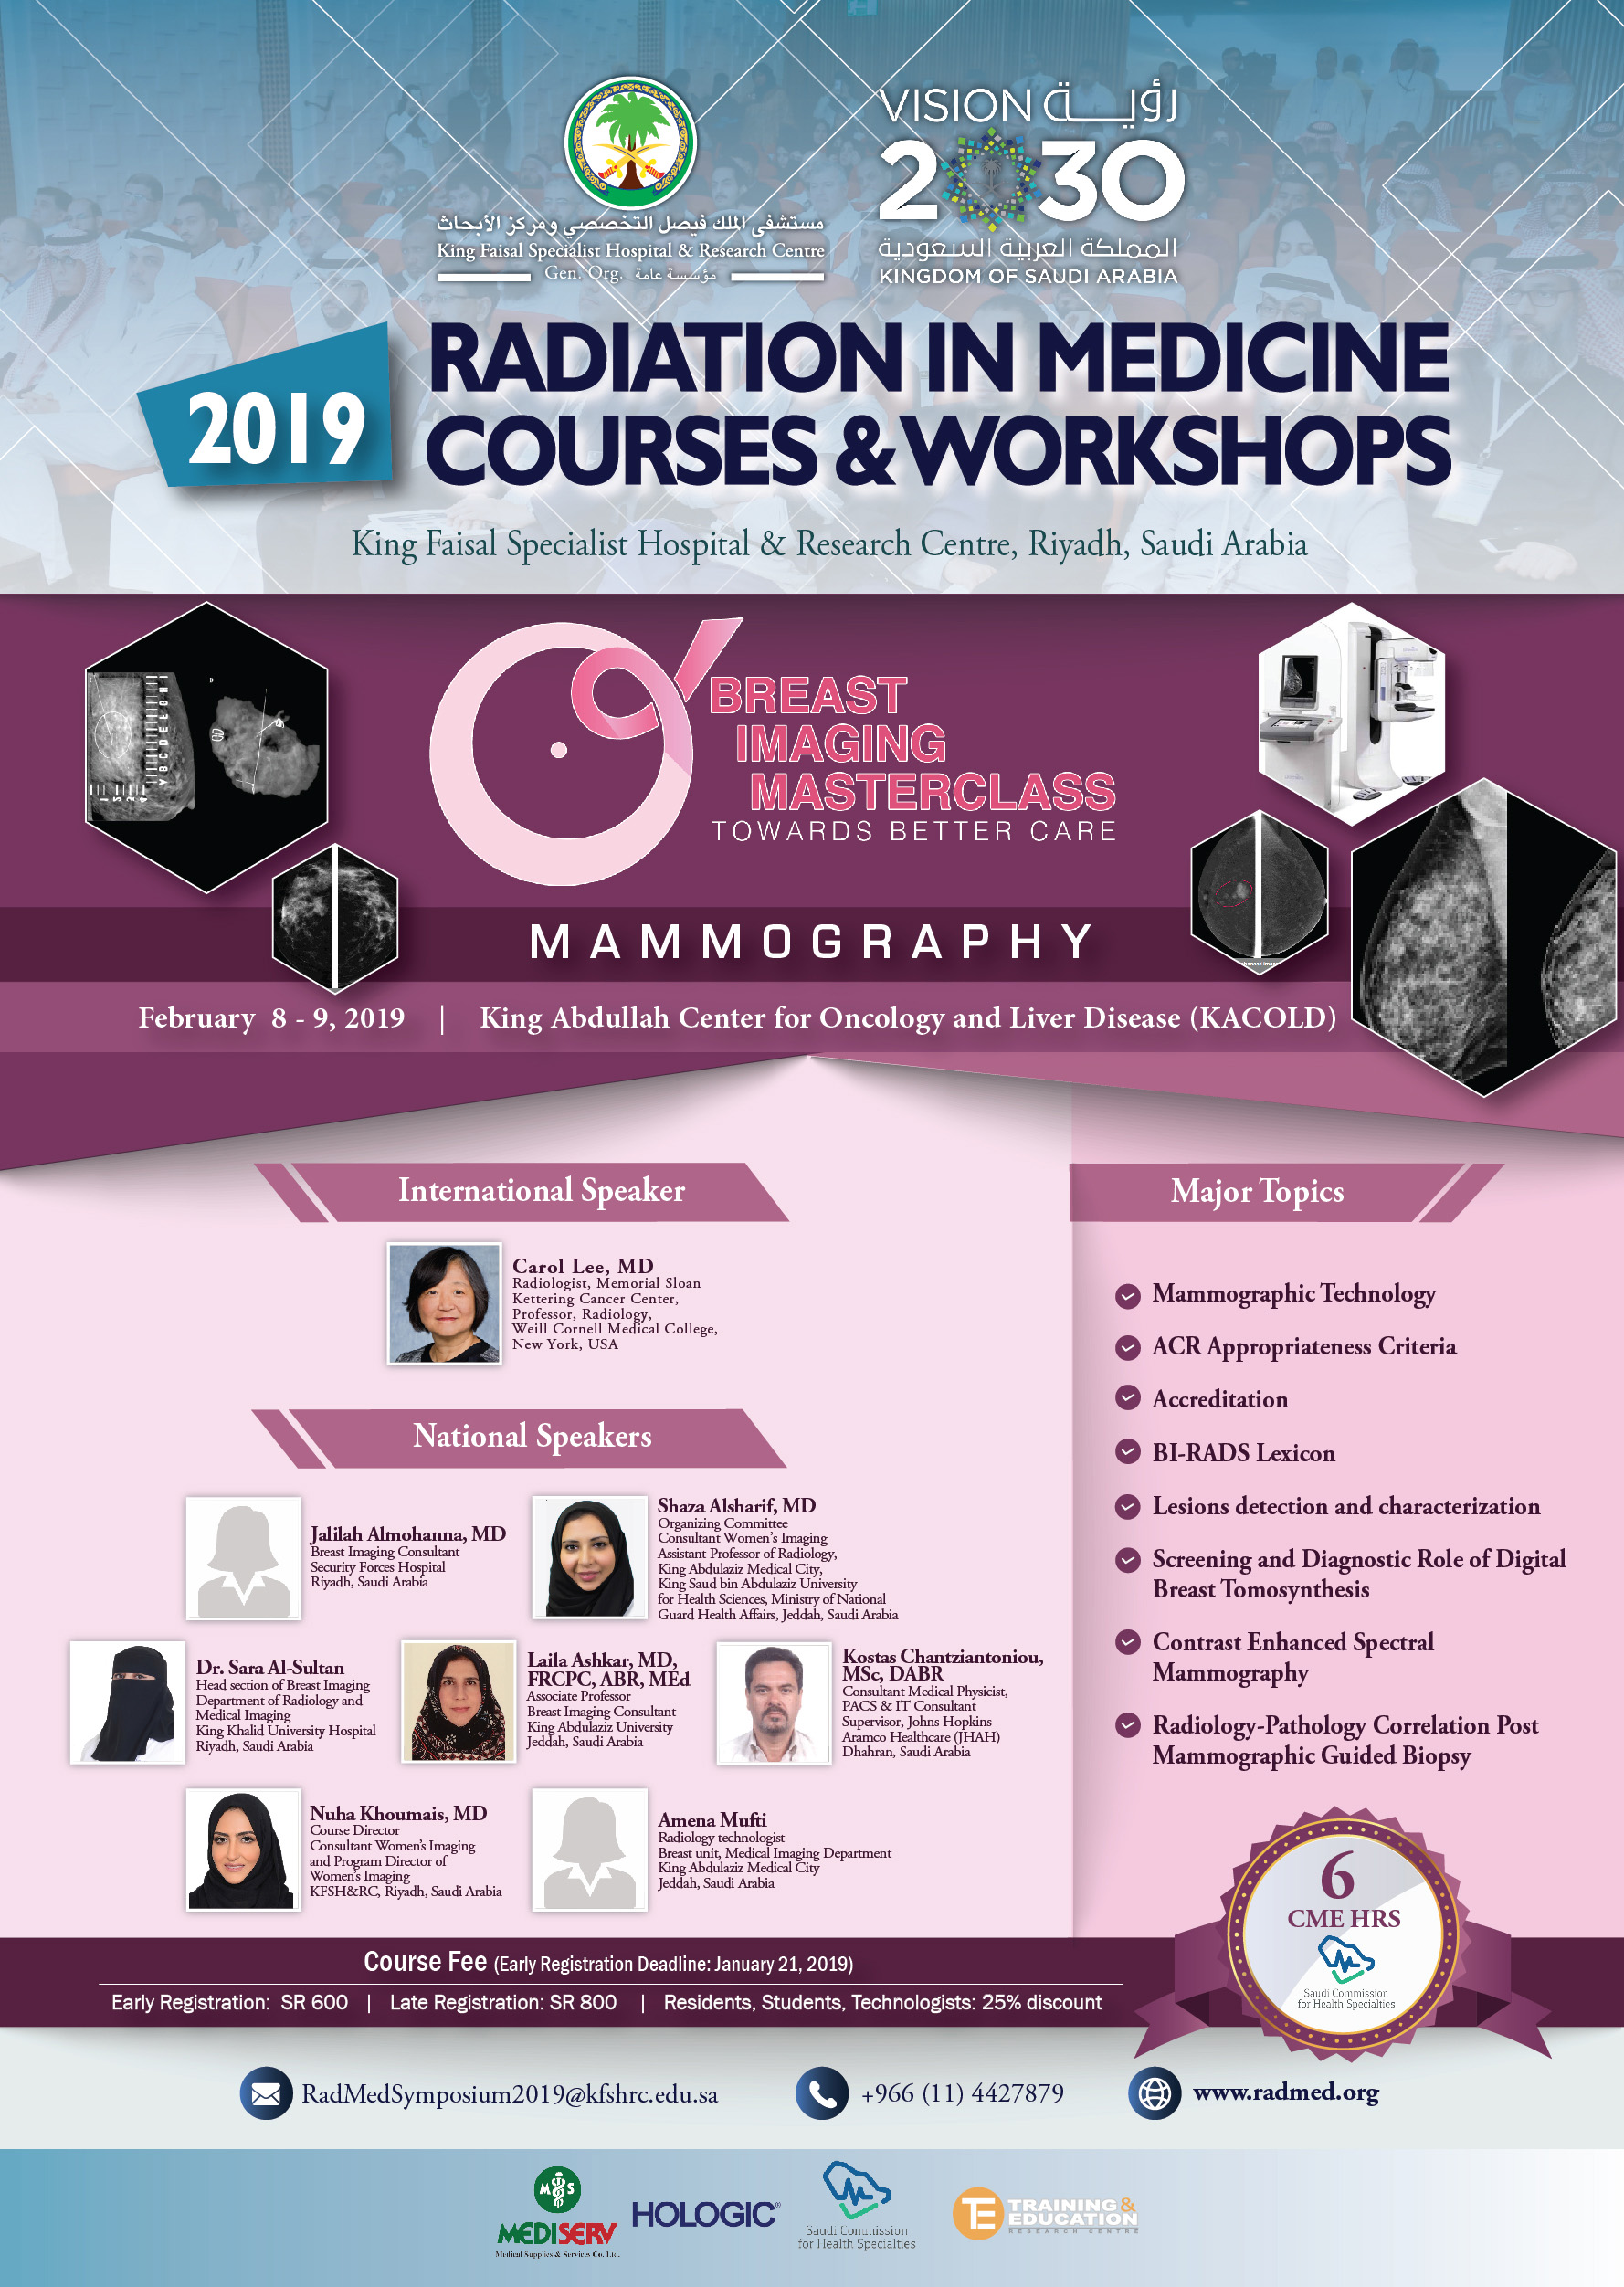 2019 Radiation in Medicine Symposium & Workshops